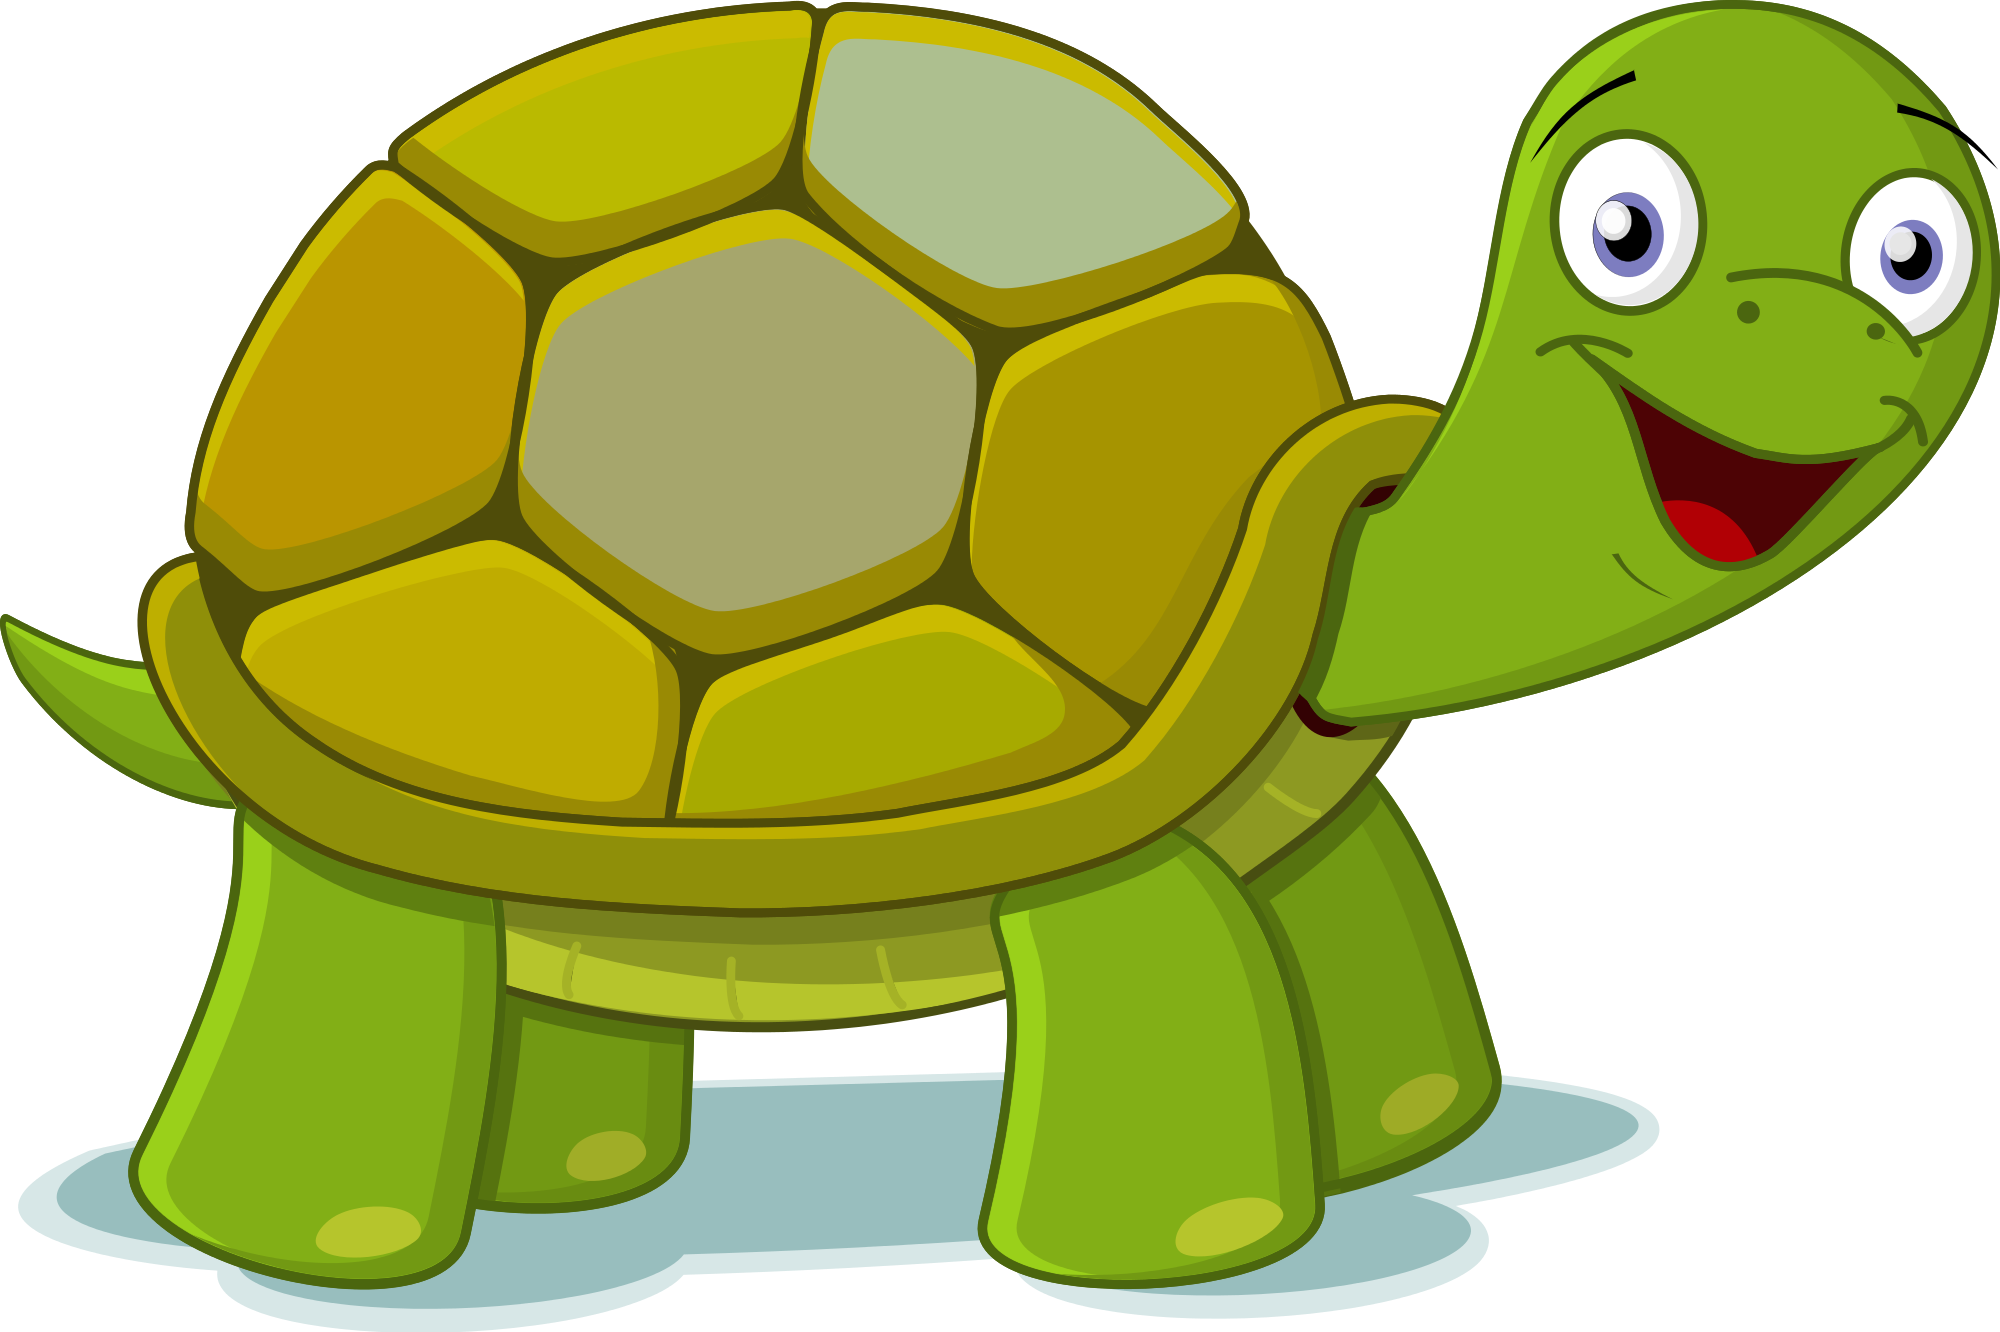 Ninja Turtles clipart yellow Clipart Turtle Panda Images Clipart